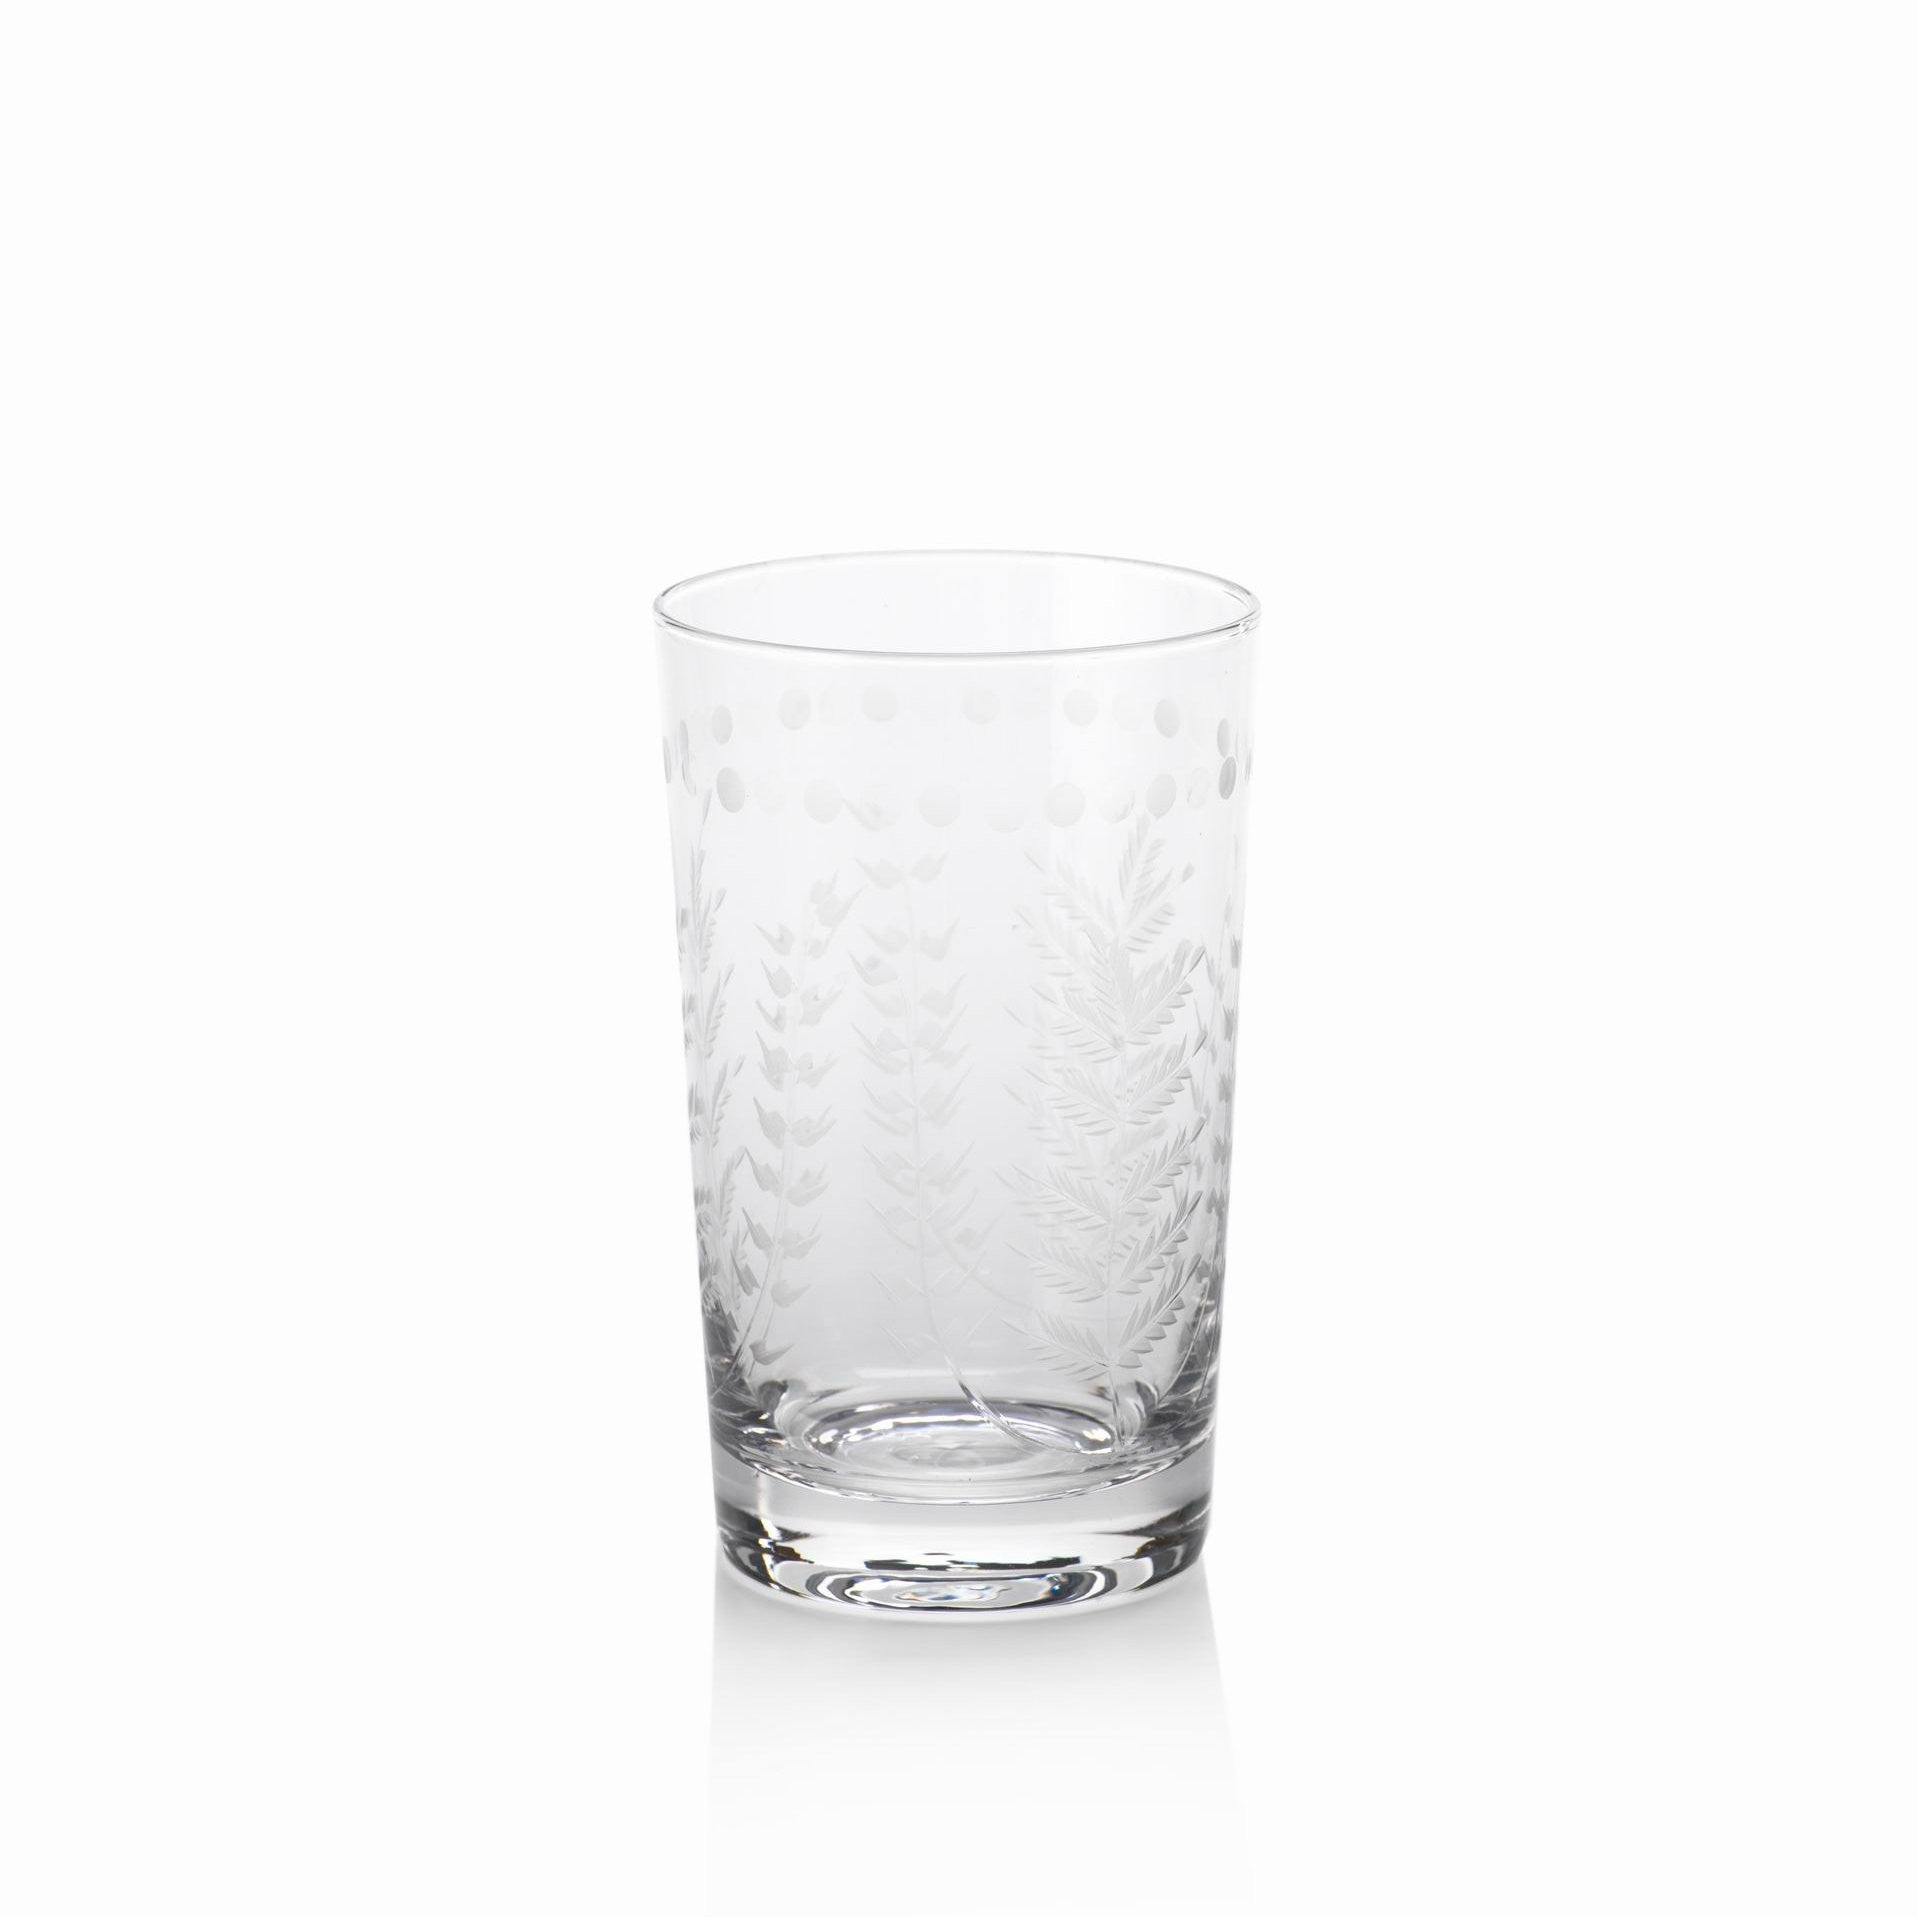 Spring Leaves Glassware - Set of 4 - High-Ball Glasses - CARLYLE AVENUE - 4